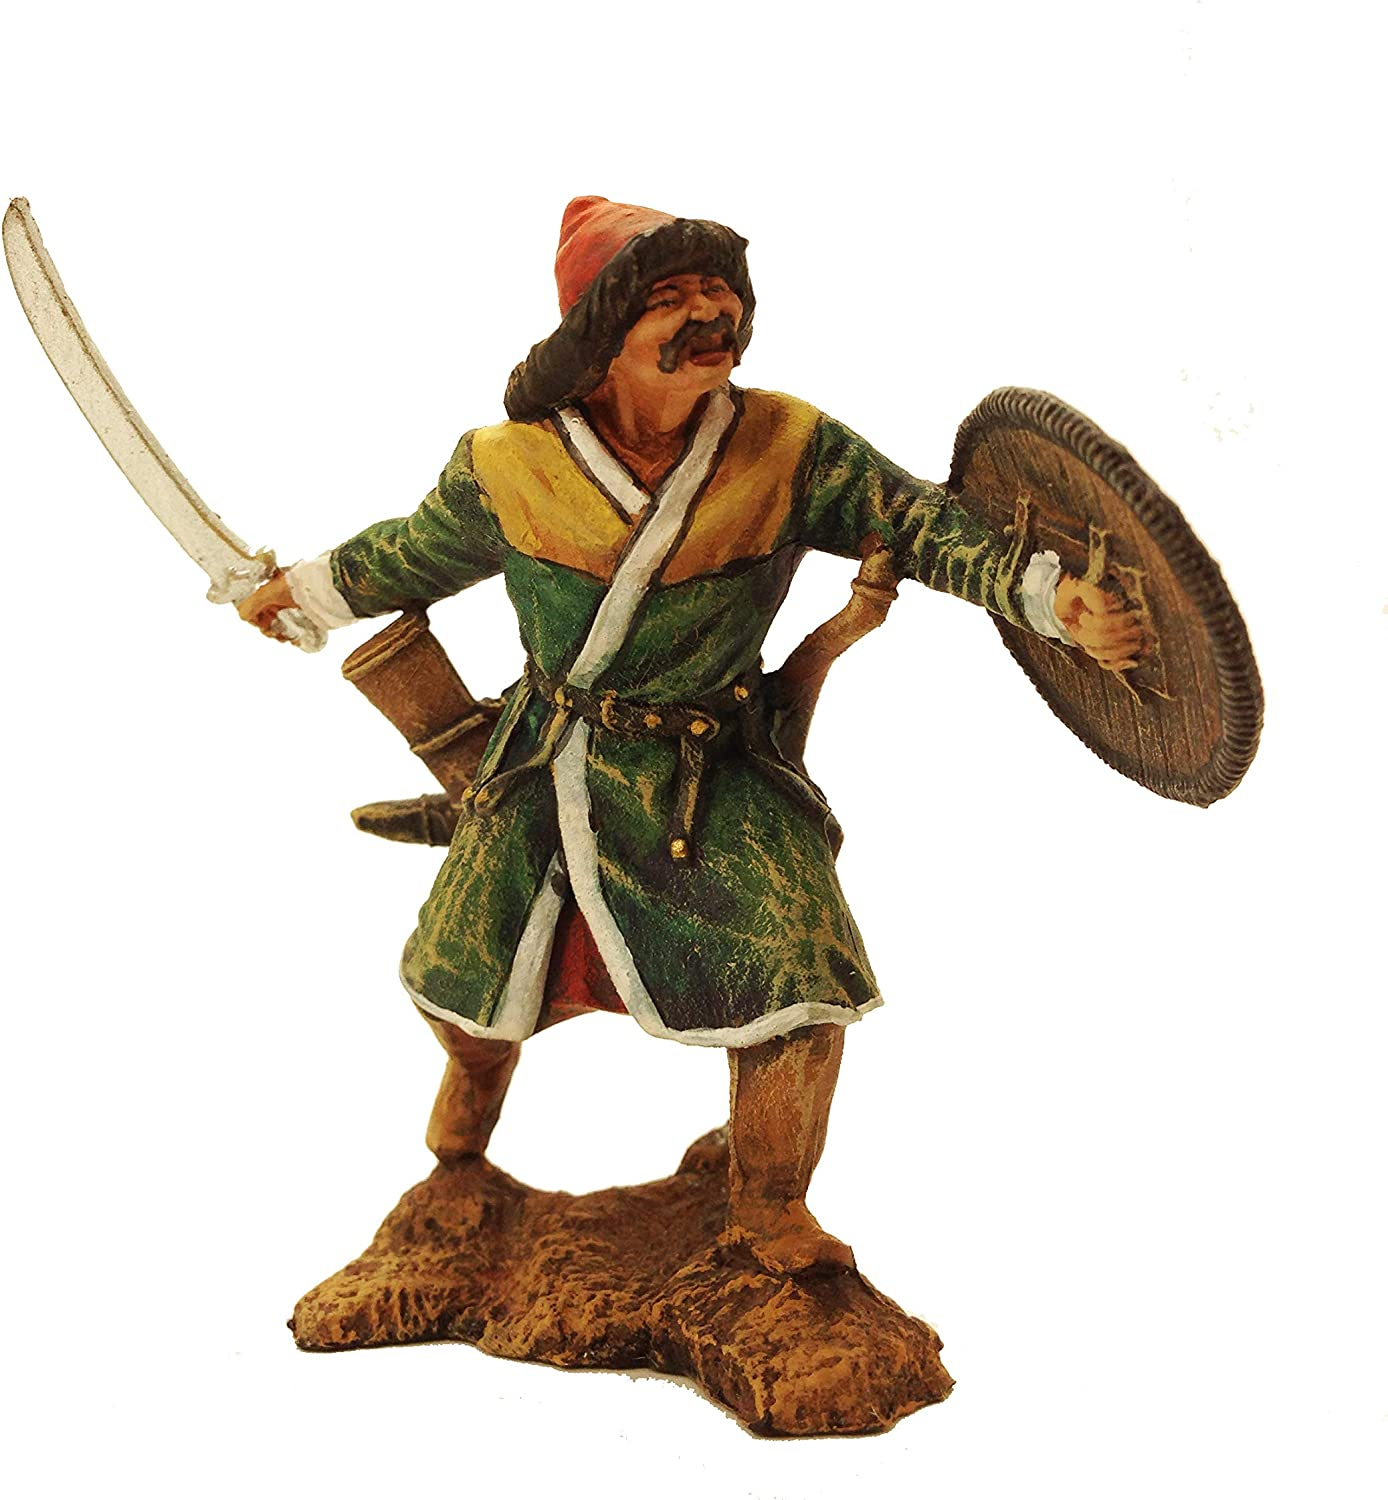 Muslim warrior Golden Horde 14th century Hand Painted Denver Mall Cash special price Ti